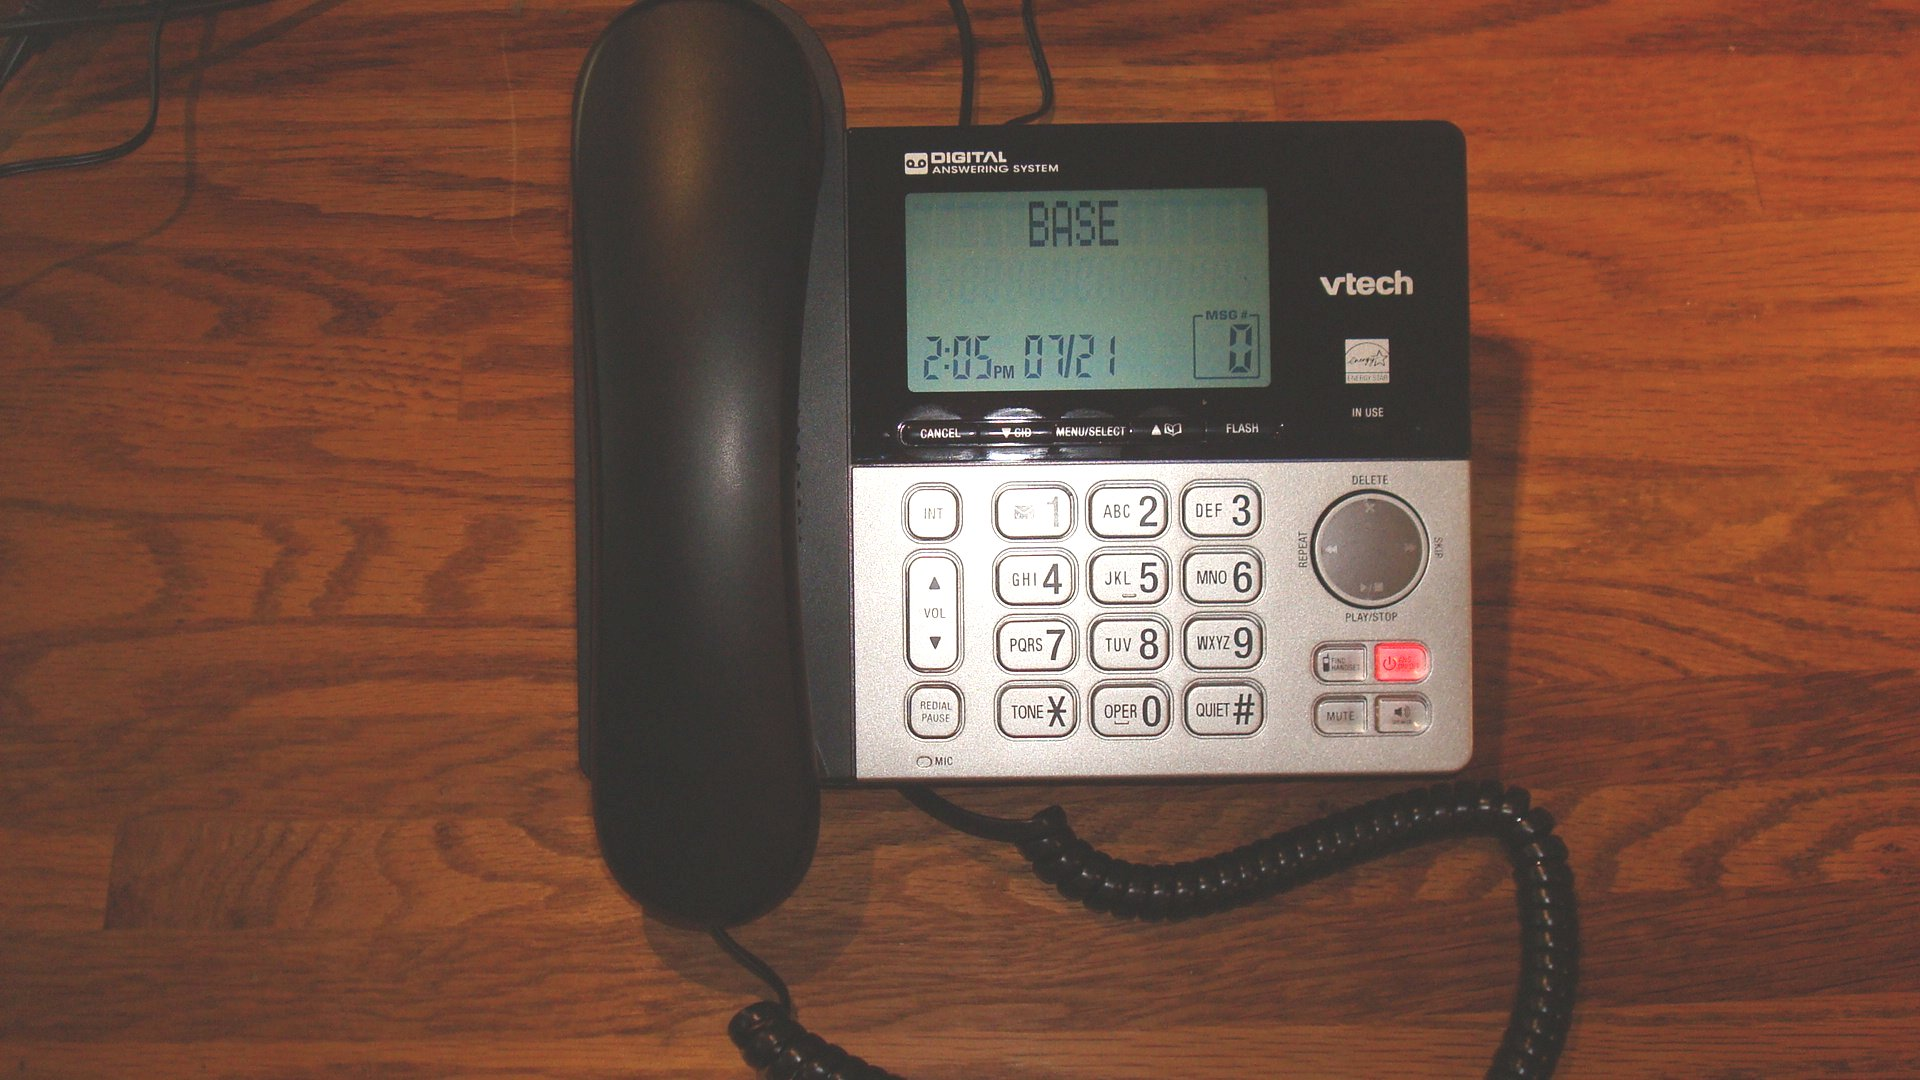 Figure 1: Newly purchased (July 2019) DECT phone answering system used for modification. Vtech model# CS6949.